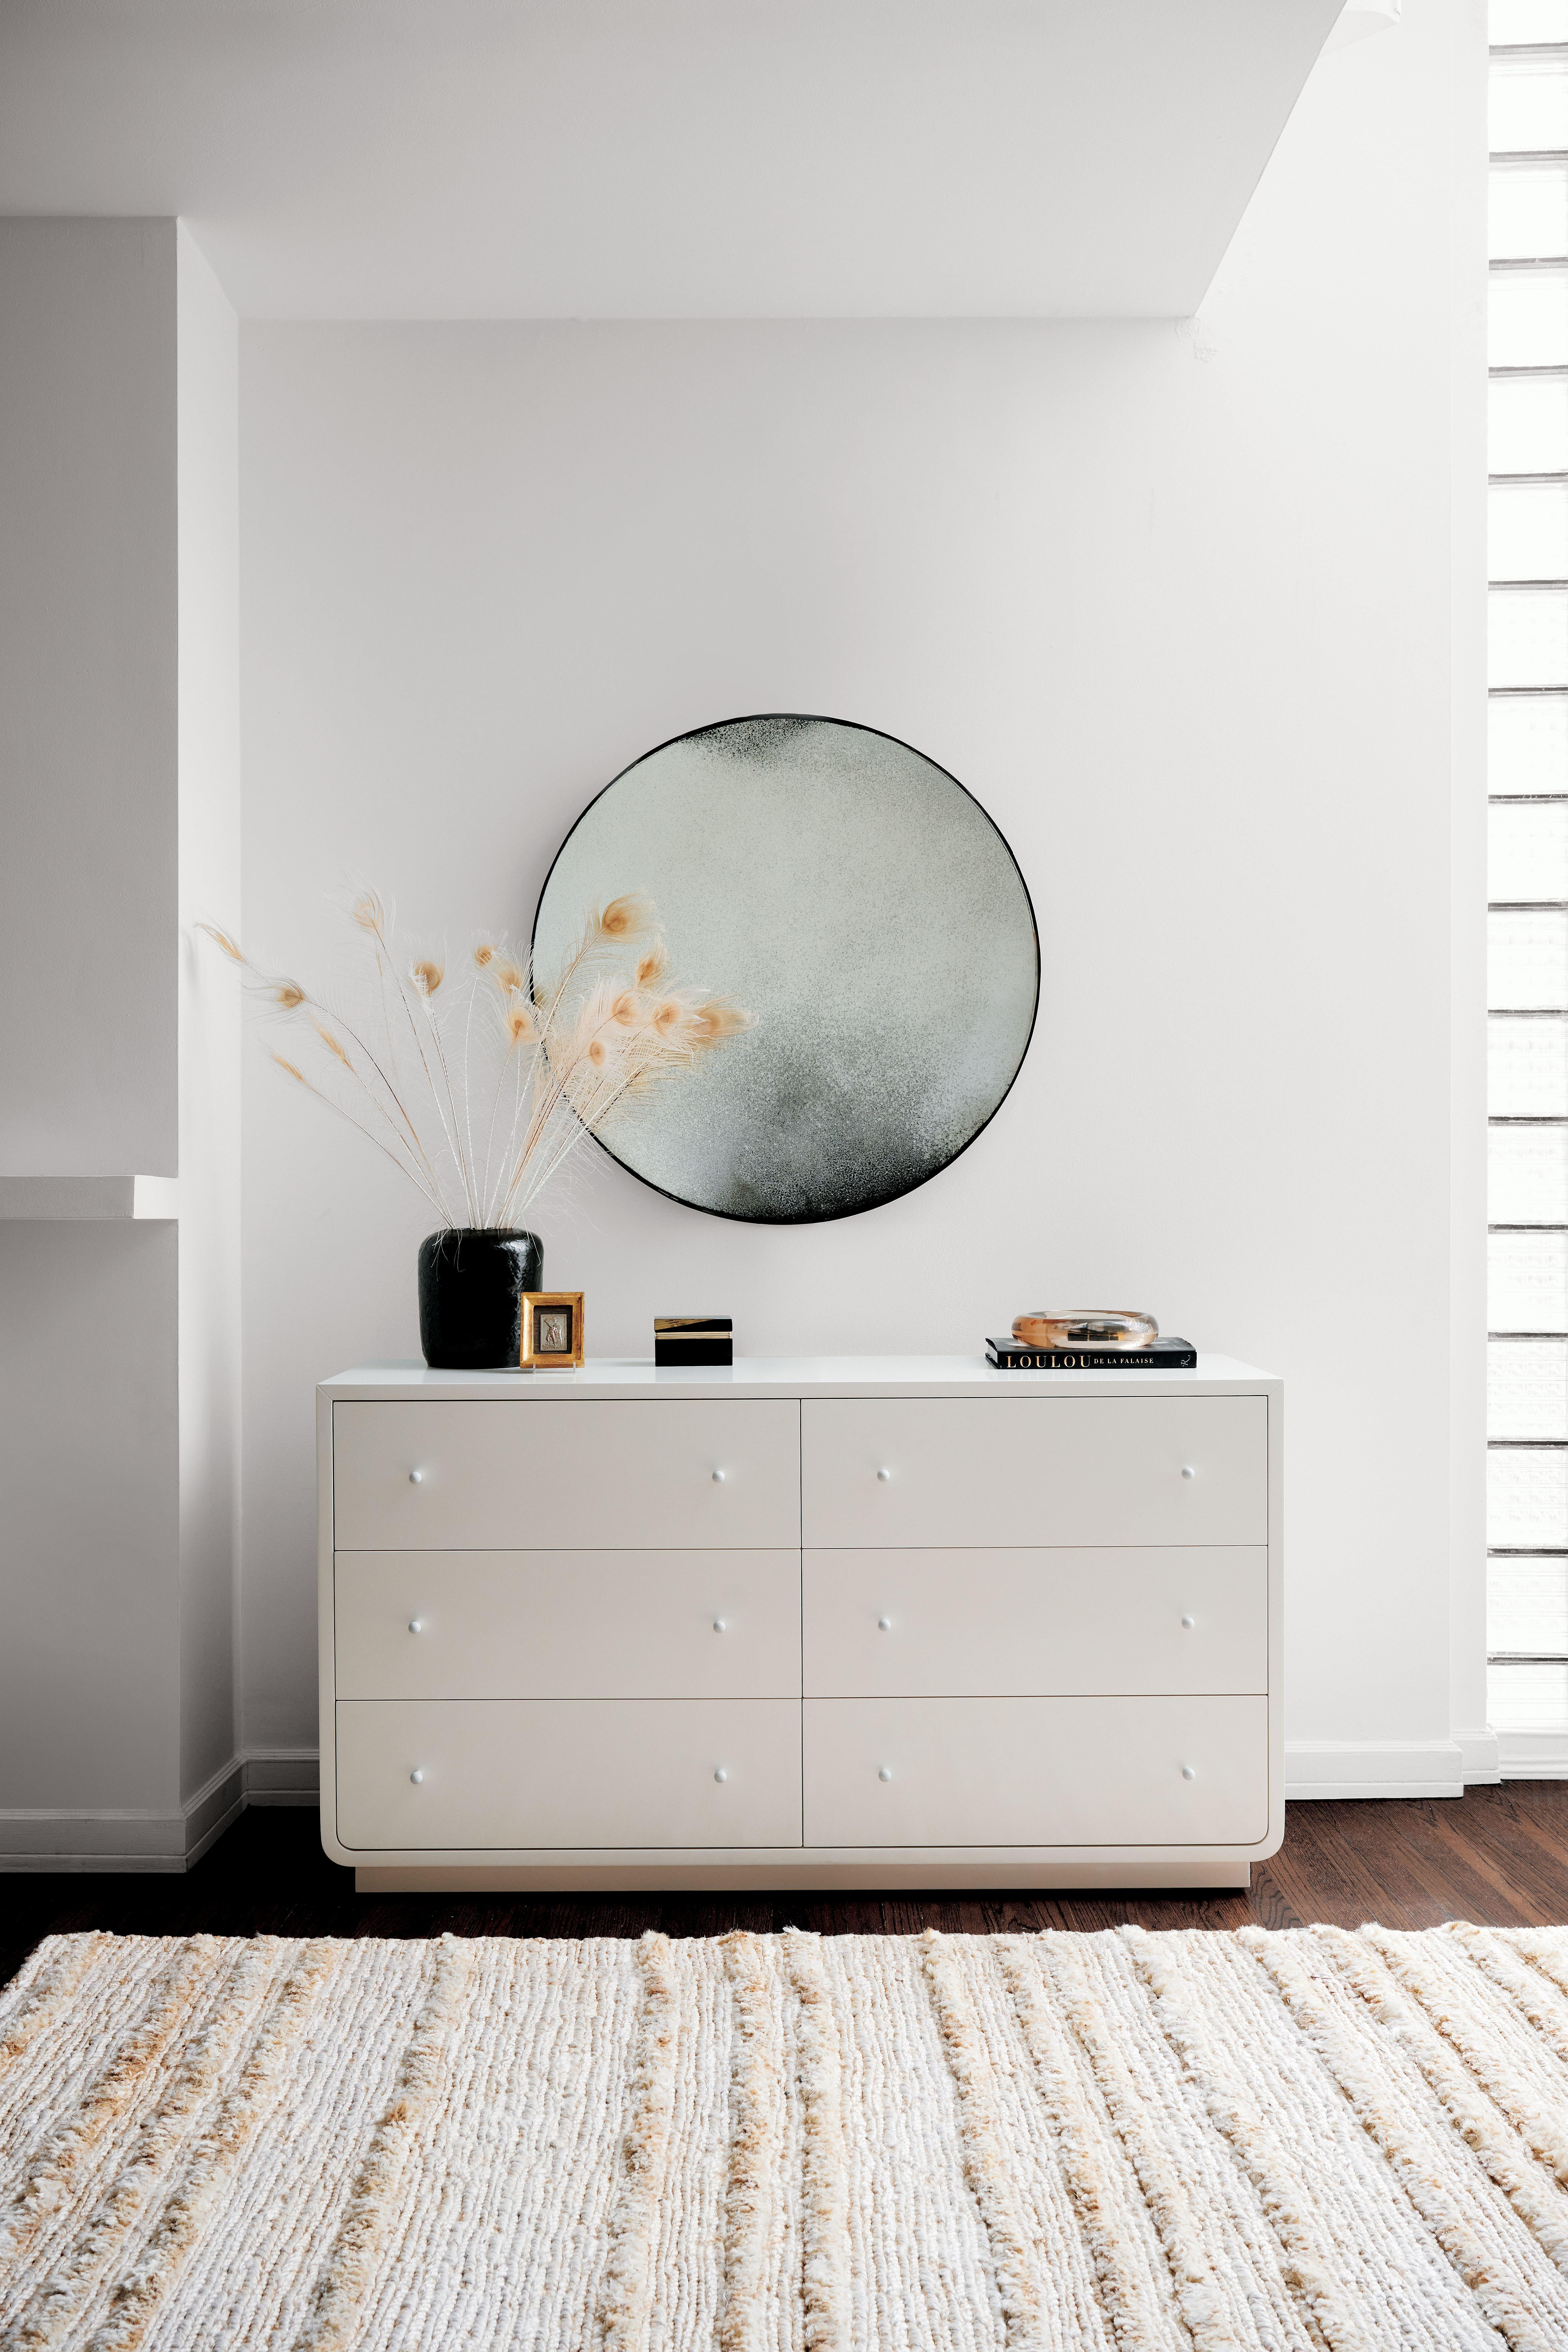 """The lacquered pieces feel decidedly modern in sophisticated shapes. $1499, CB2. <a href=""""https://www.cb2.com/bowed-white-lacquered-low-dresser/s628853"""" rel=""""nofollow noopener"""" target=""""_blank"""" data-ylk=""""slk:Get it now!"""" class=""""link rapid-noclick-resp"""">Get it now!</a>"""